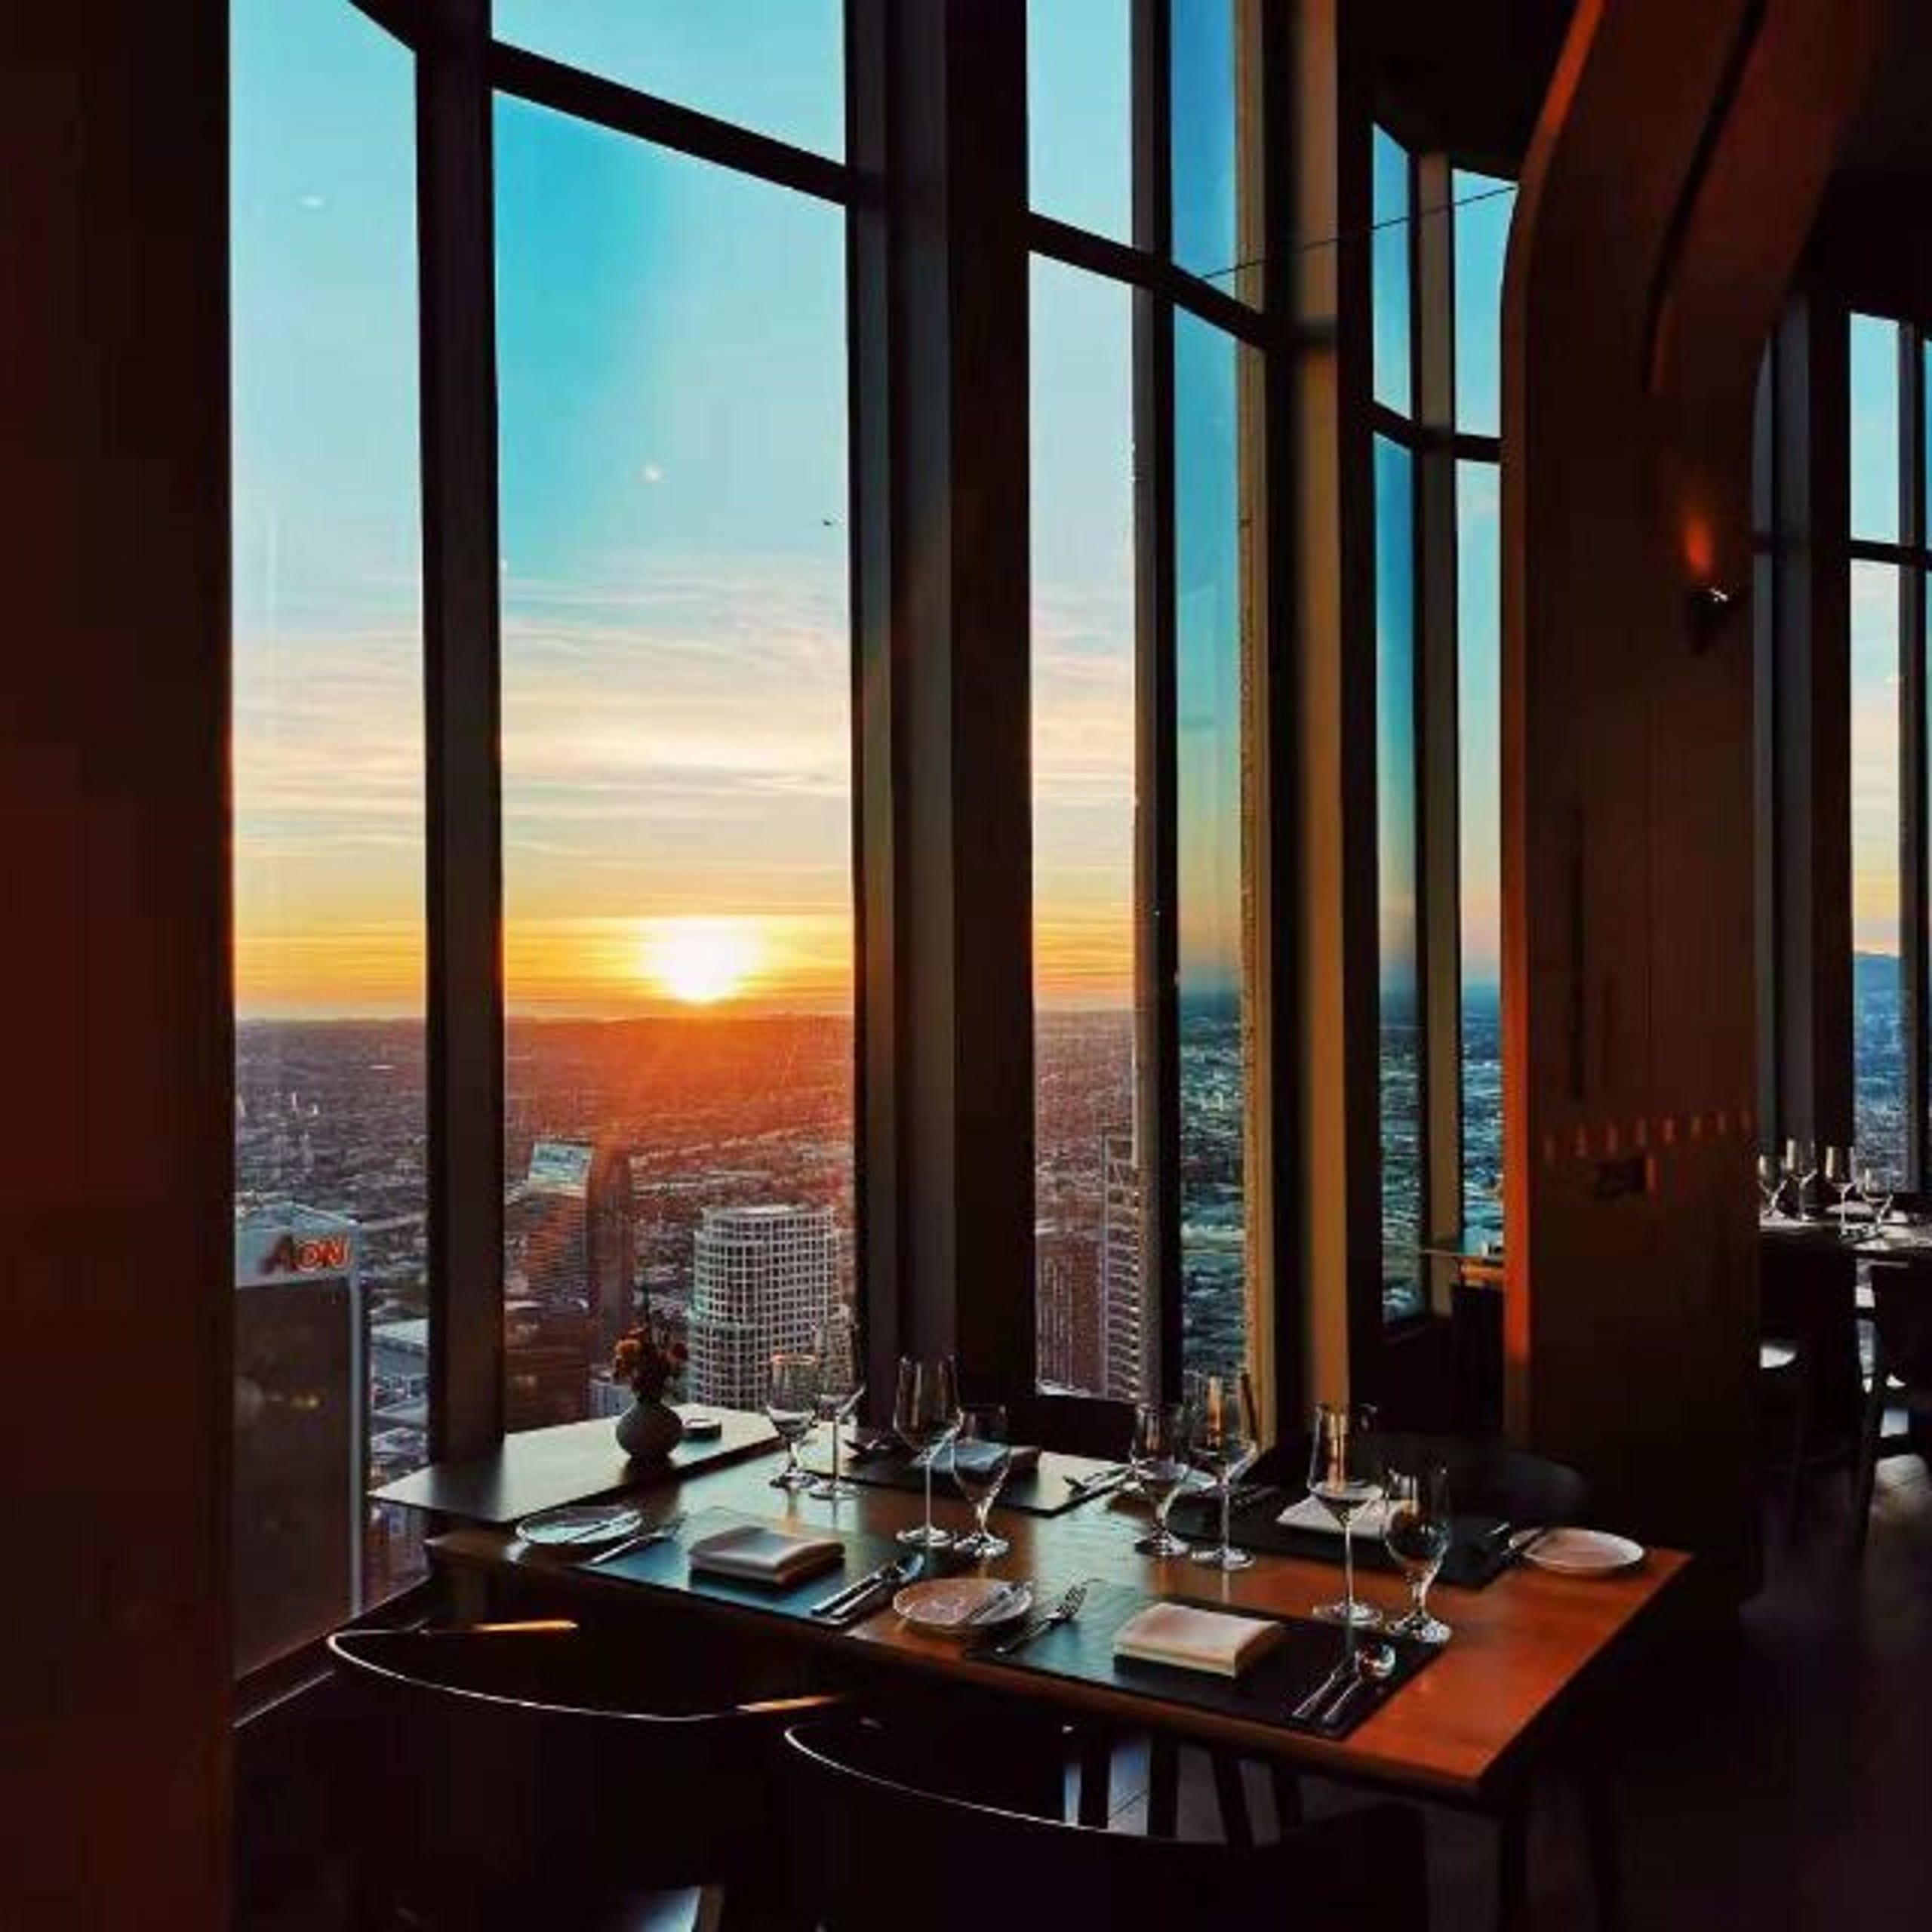 100 Most Scenic Restaurants Across America